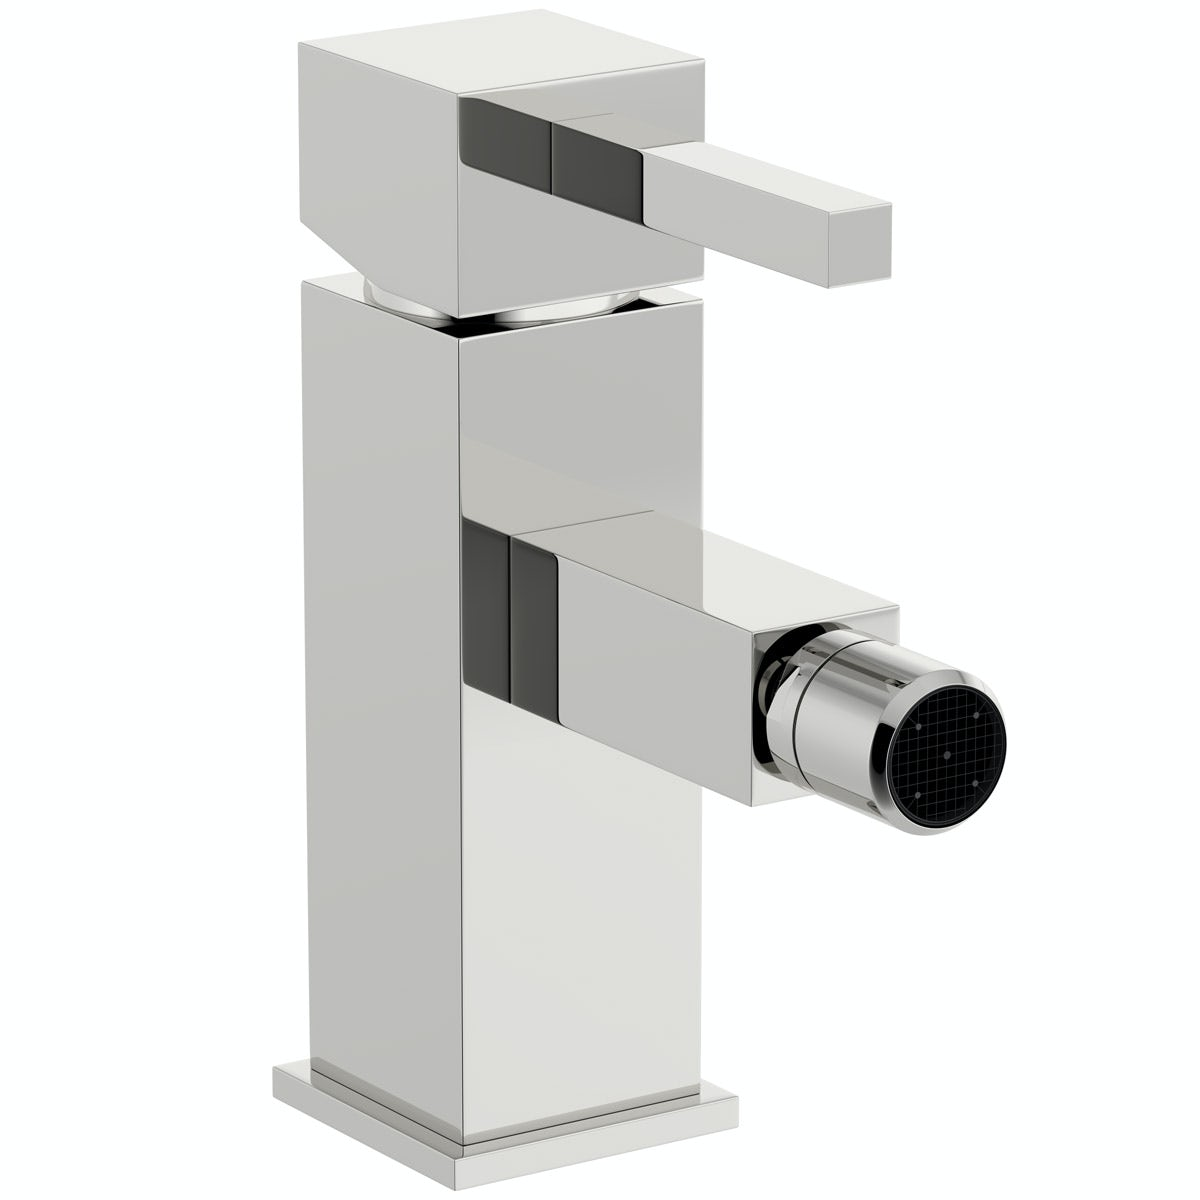 Orchard Cubik bidet mixer tap with pop up waste